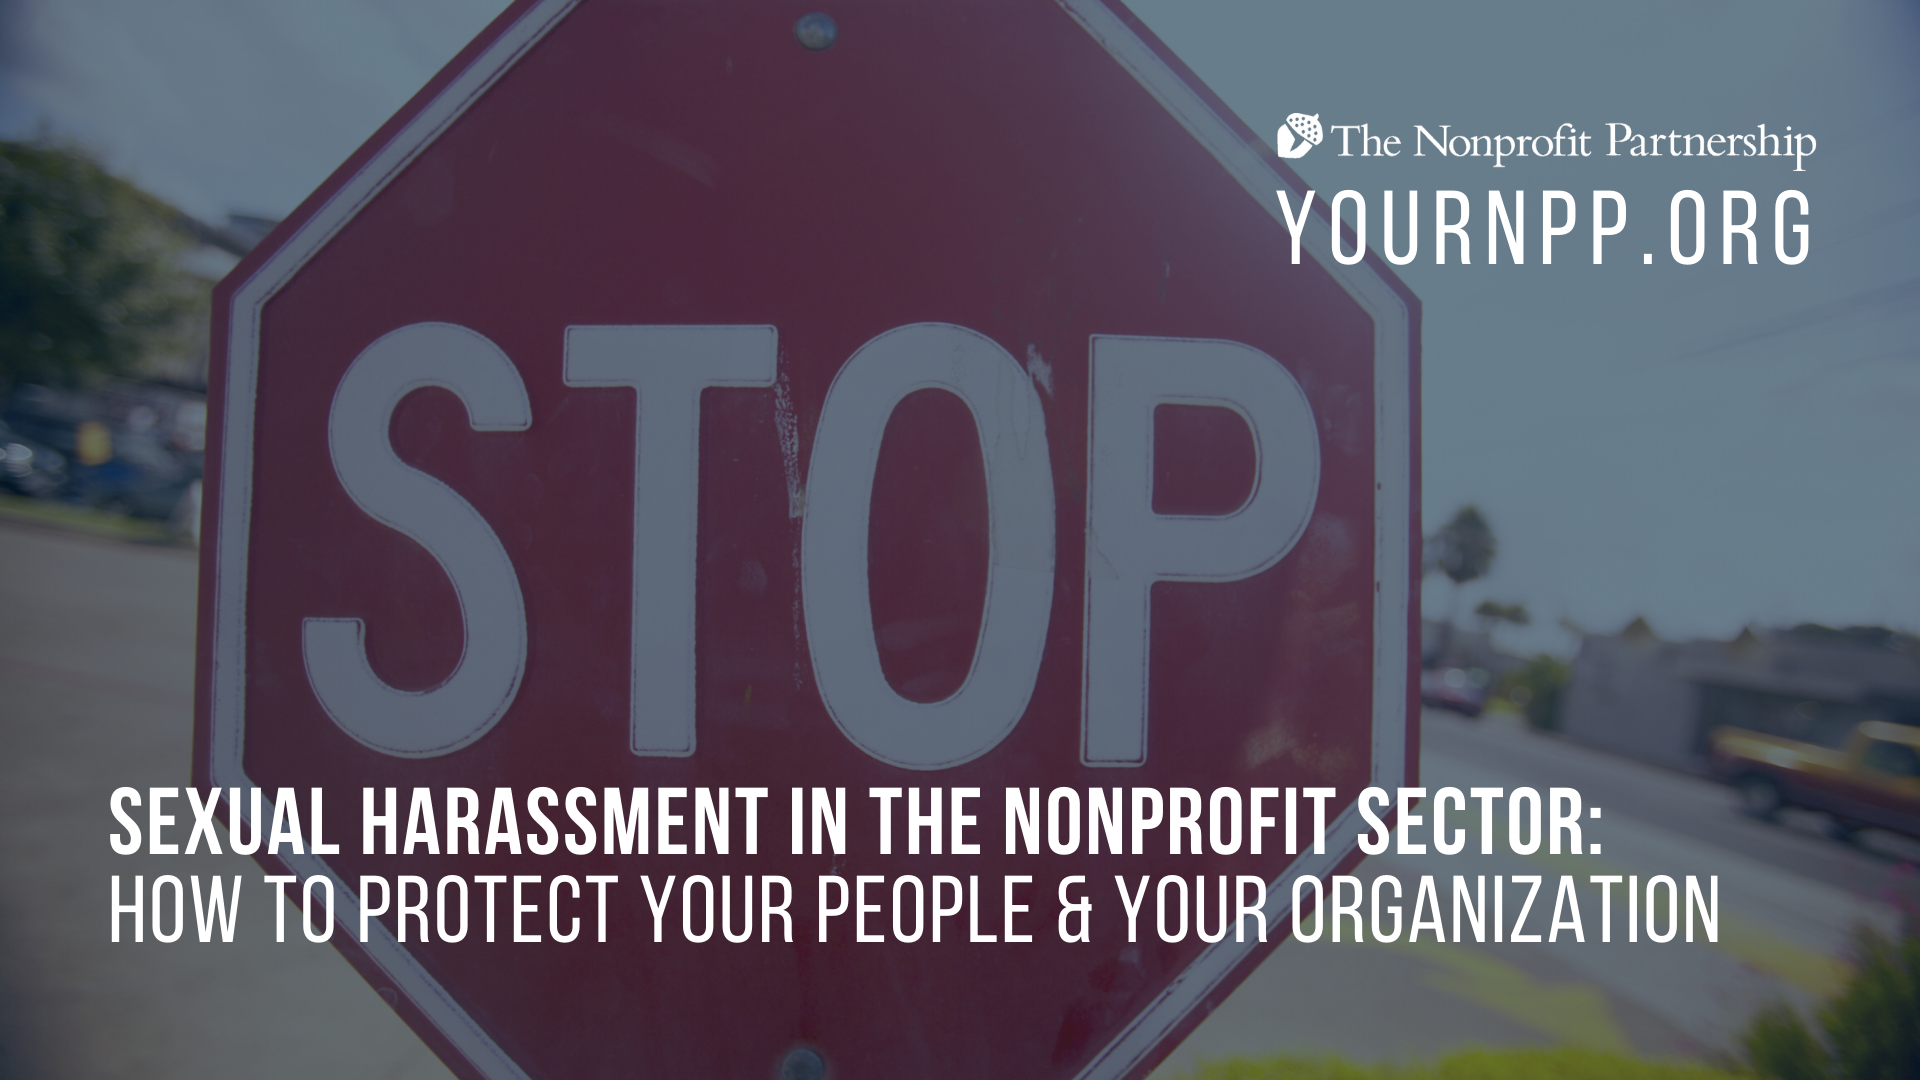 **POSTPONED - Sexual Harassment in the Nonprofit Sector: How to Protect Your People & Your Organization